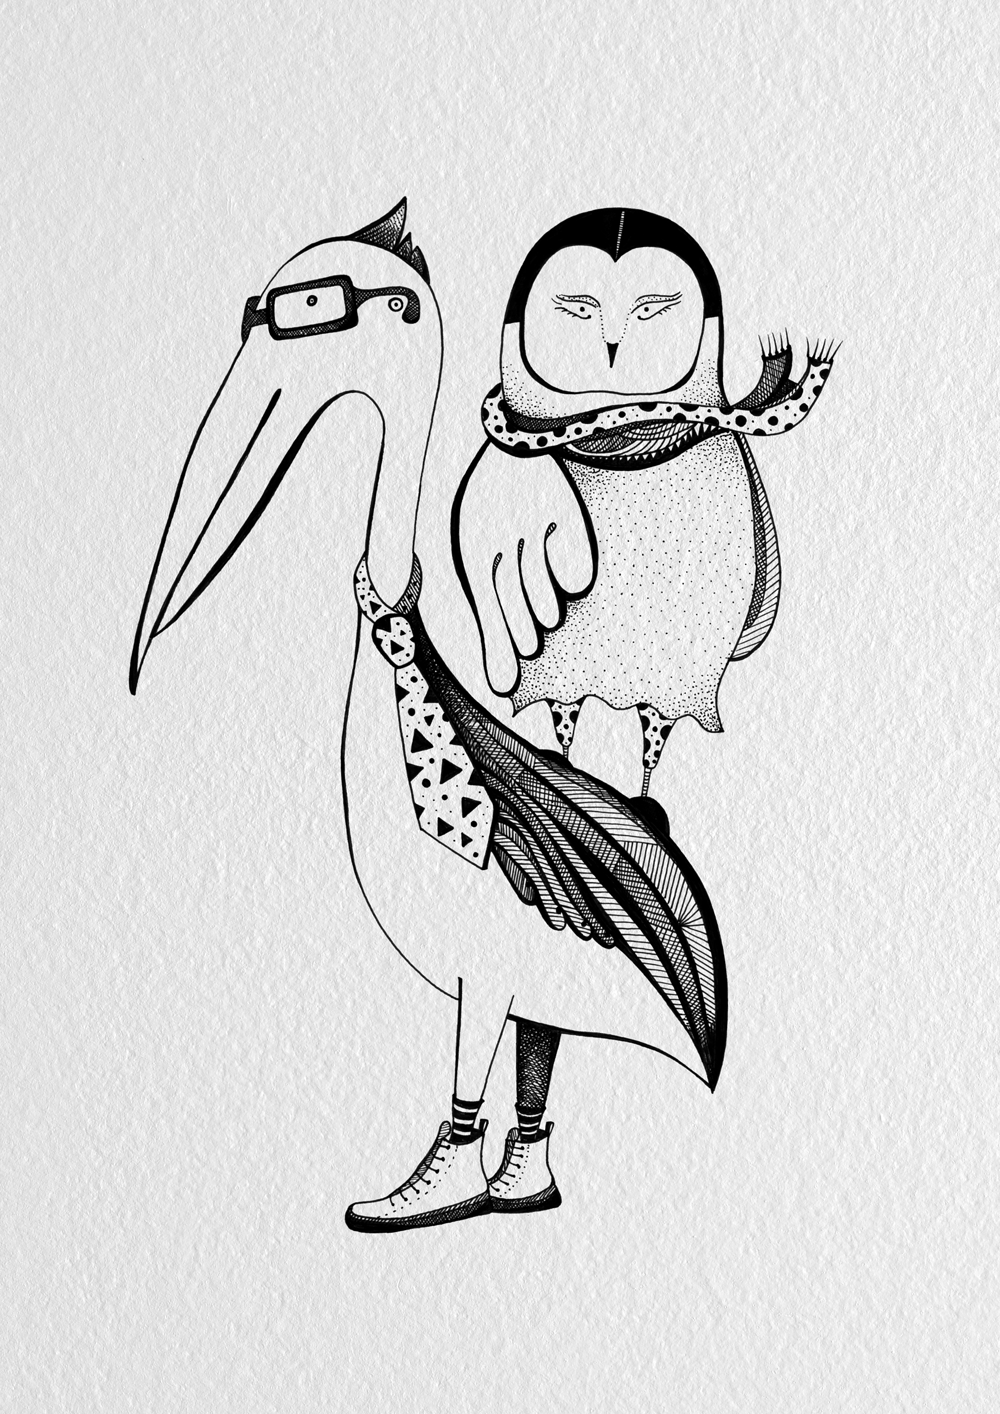 Owl & Pelican Wedding illustration | zazdesign graphic lab